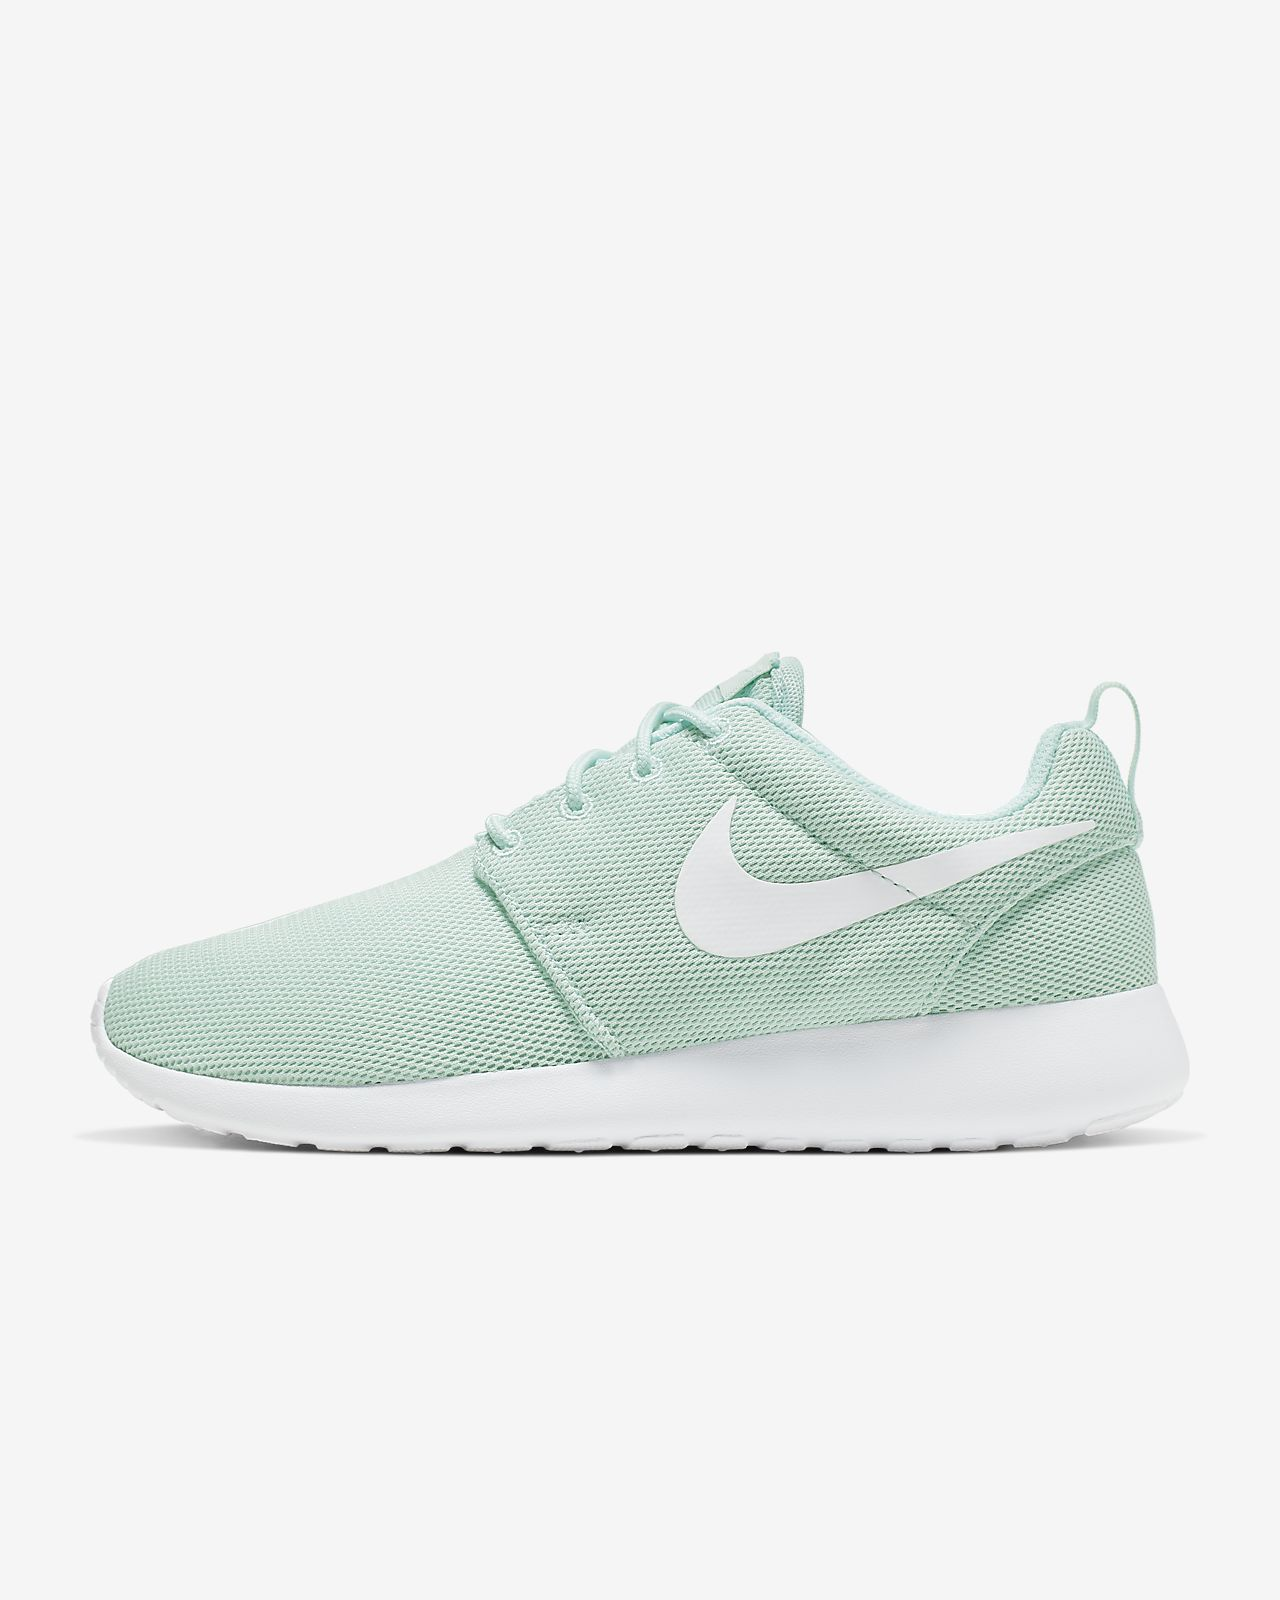 premium selection 6888b 4703d ... Nike Roshe One Women s Shoe